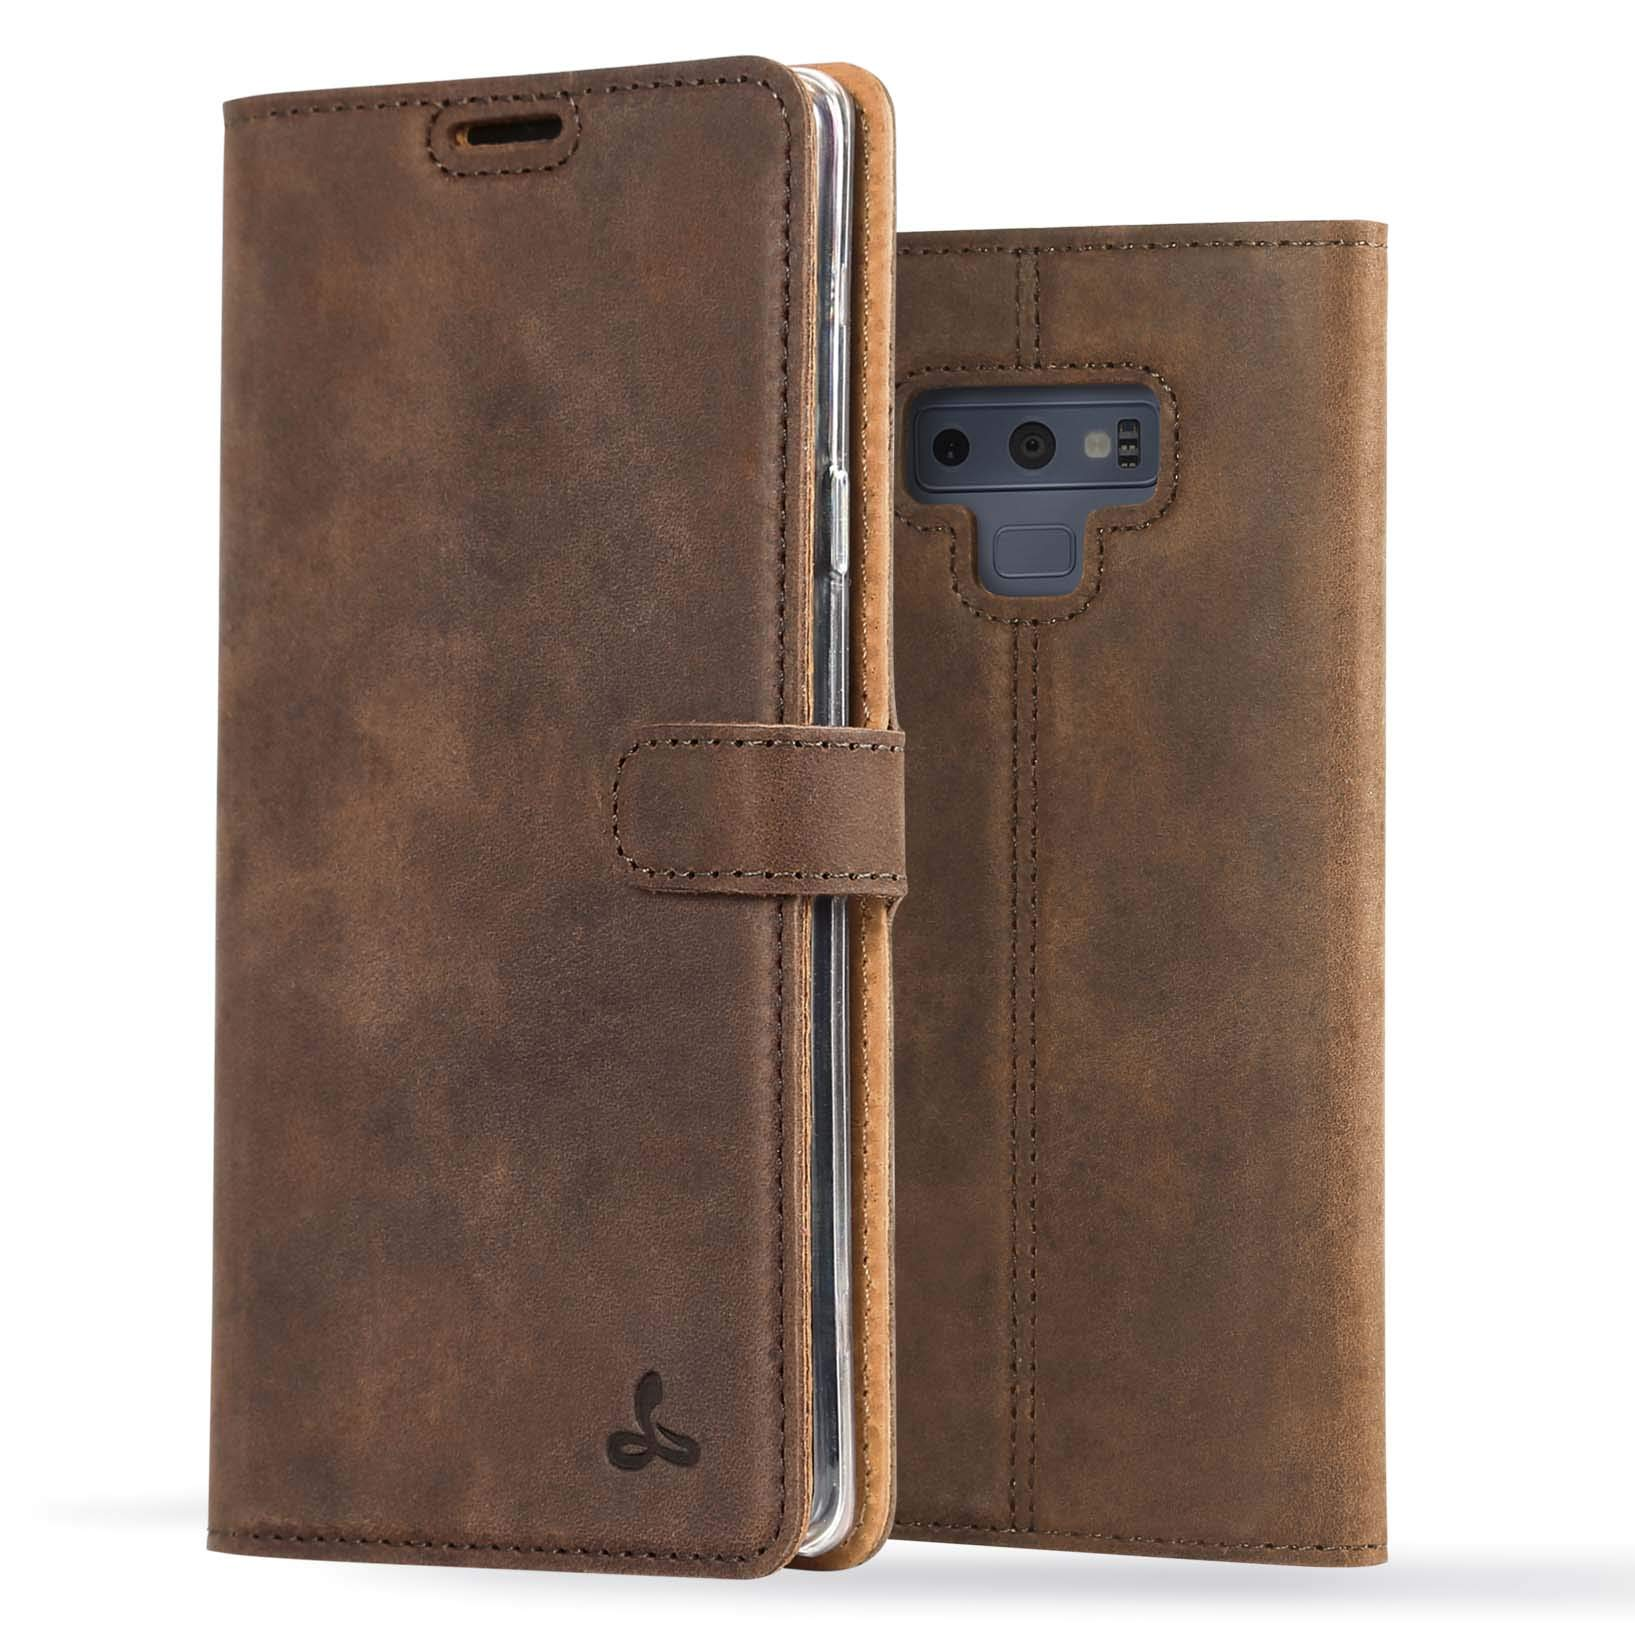 Snakehive Samsung Galaxy Note 9 Case, Luxury Genuine Leather Wallet with Viewing Stand and Card Slots, Flip Cover Gift Boxed and Handmade in Europe for Samsung Galaxy Note 9 - Brown by Snakehive